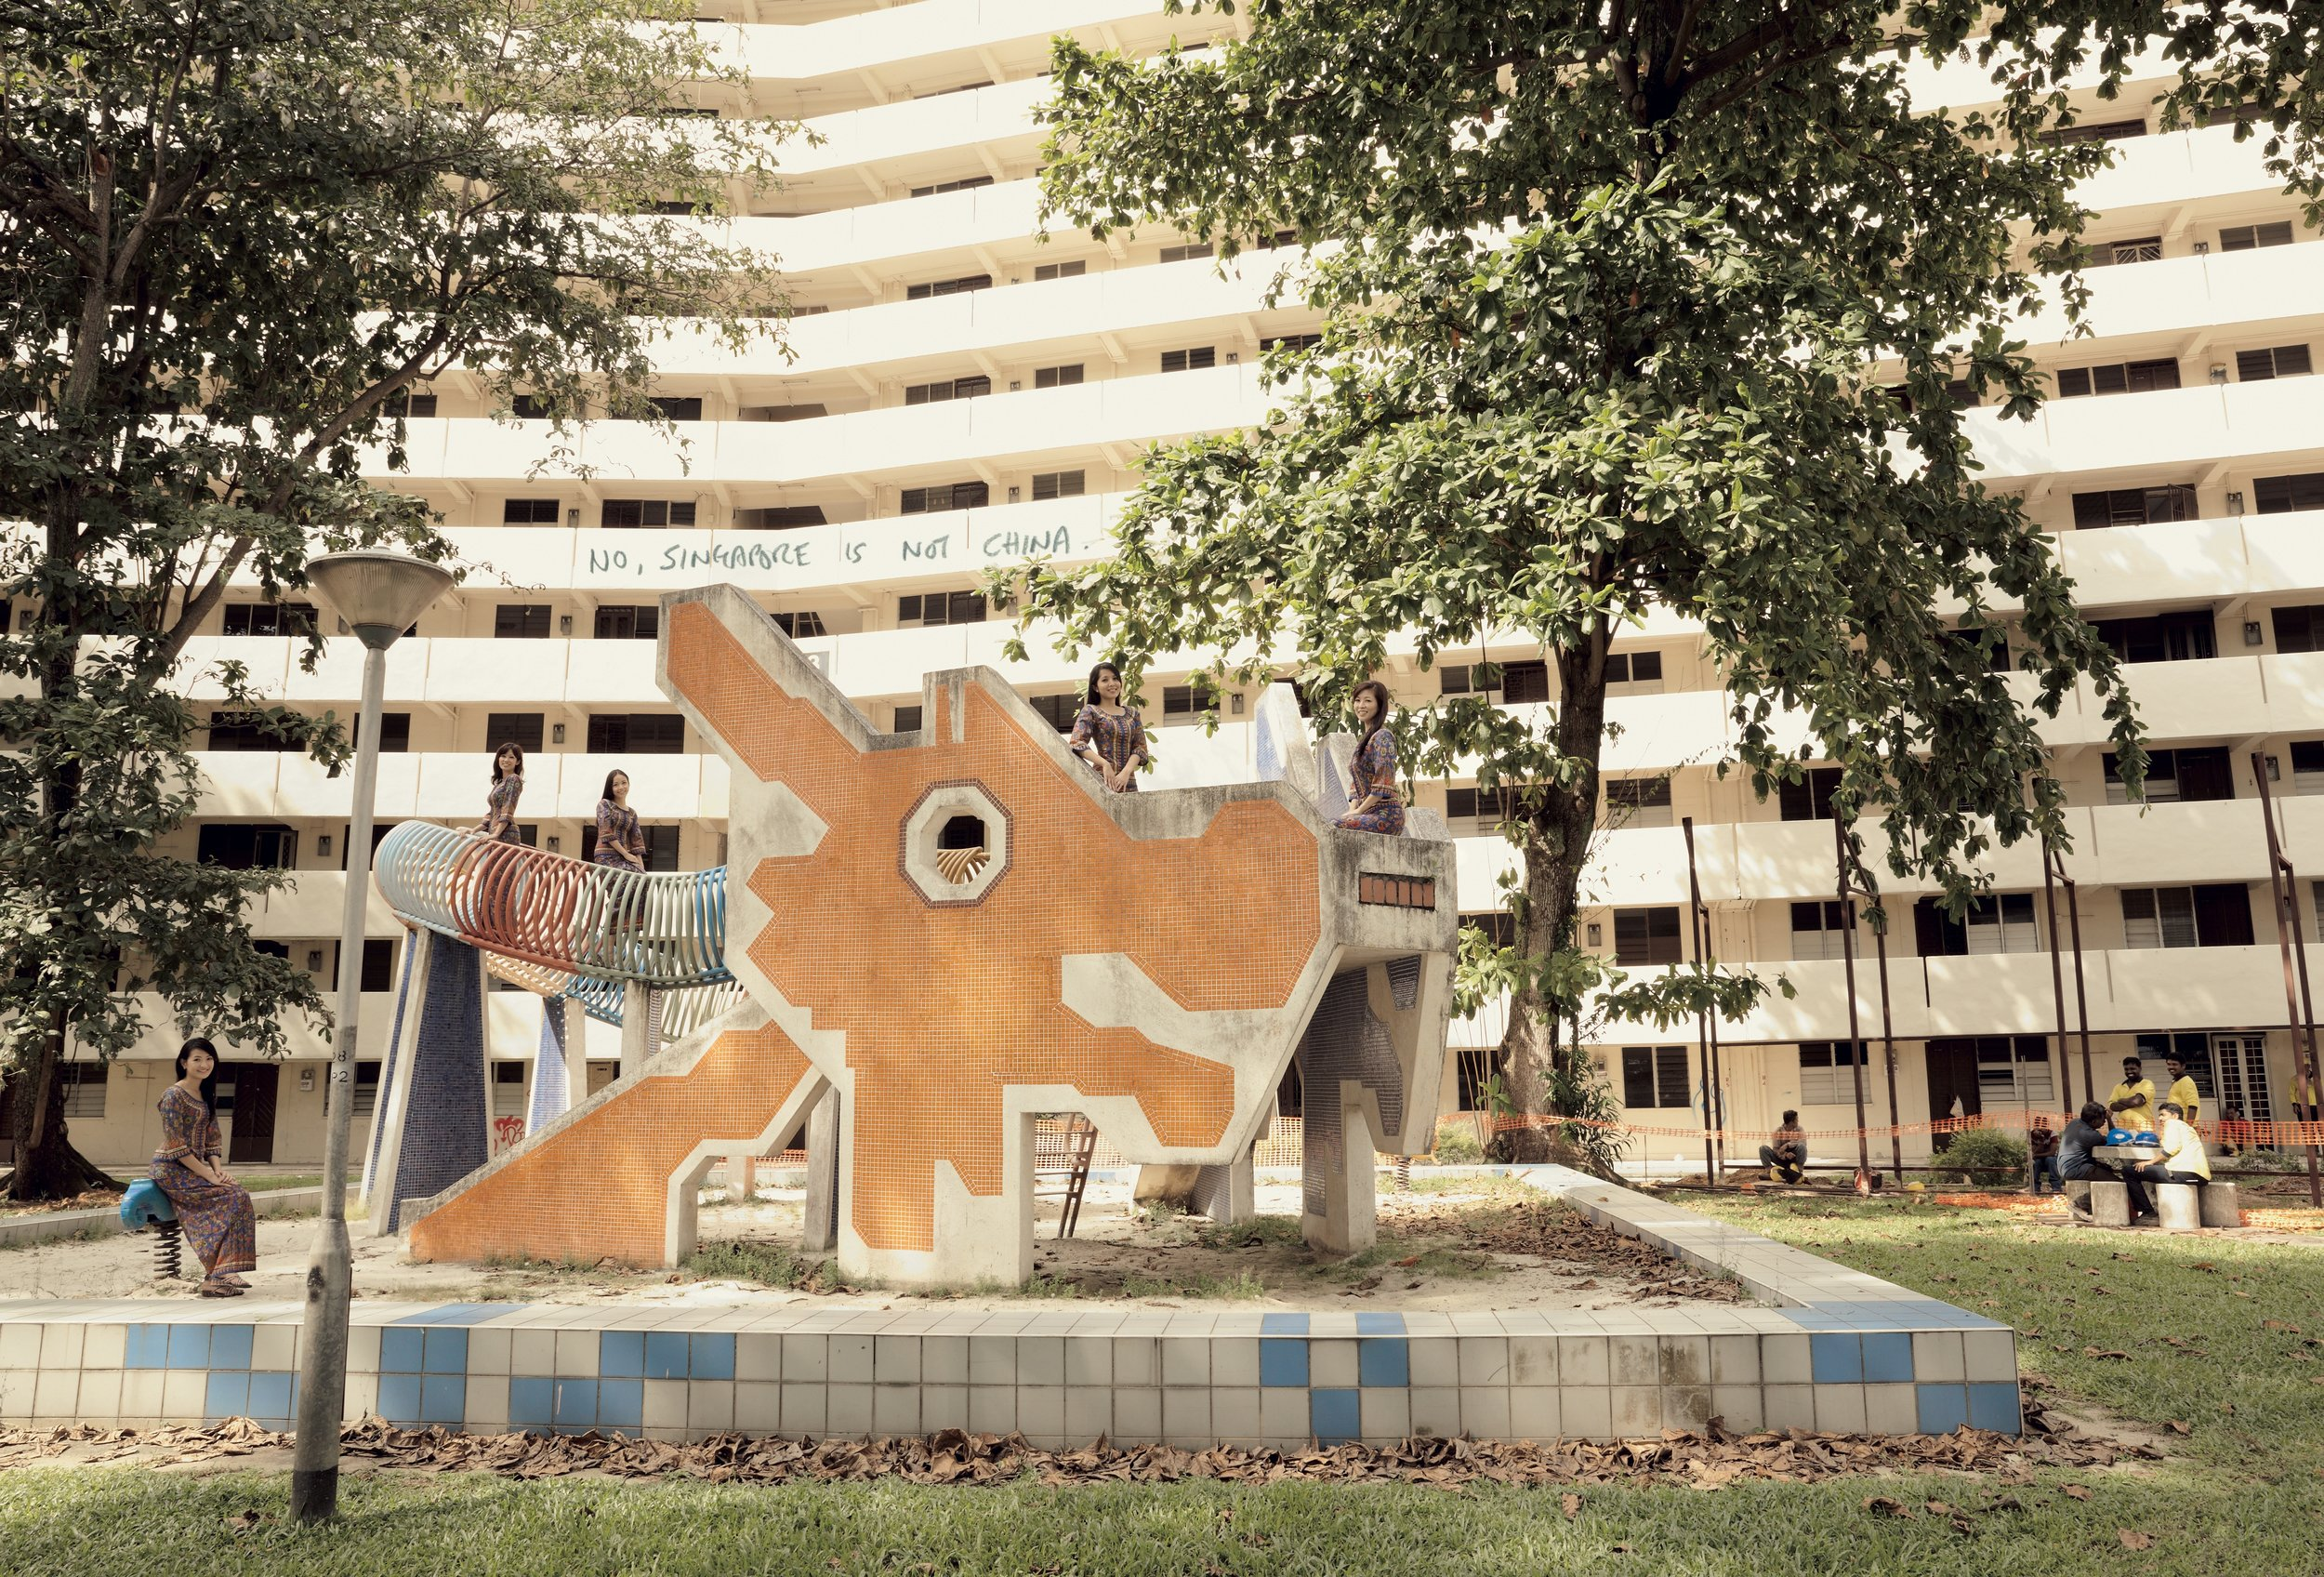 John Clang, 'Land of My Heart: Dragon Playground'. Image courtesy of the artist and DECK Singapore.